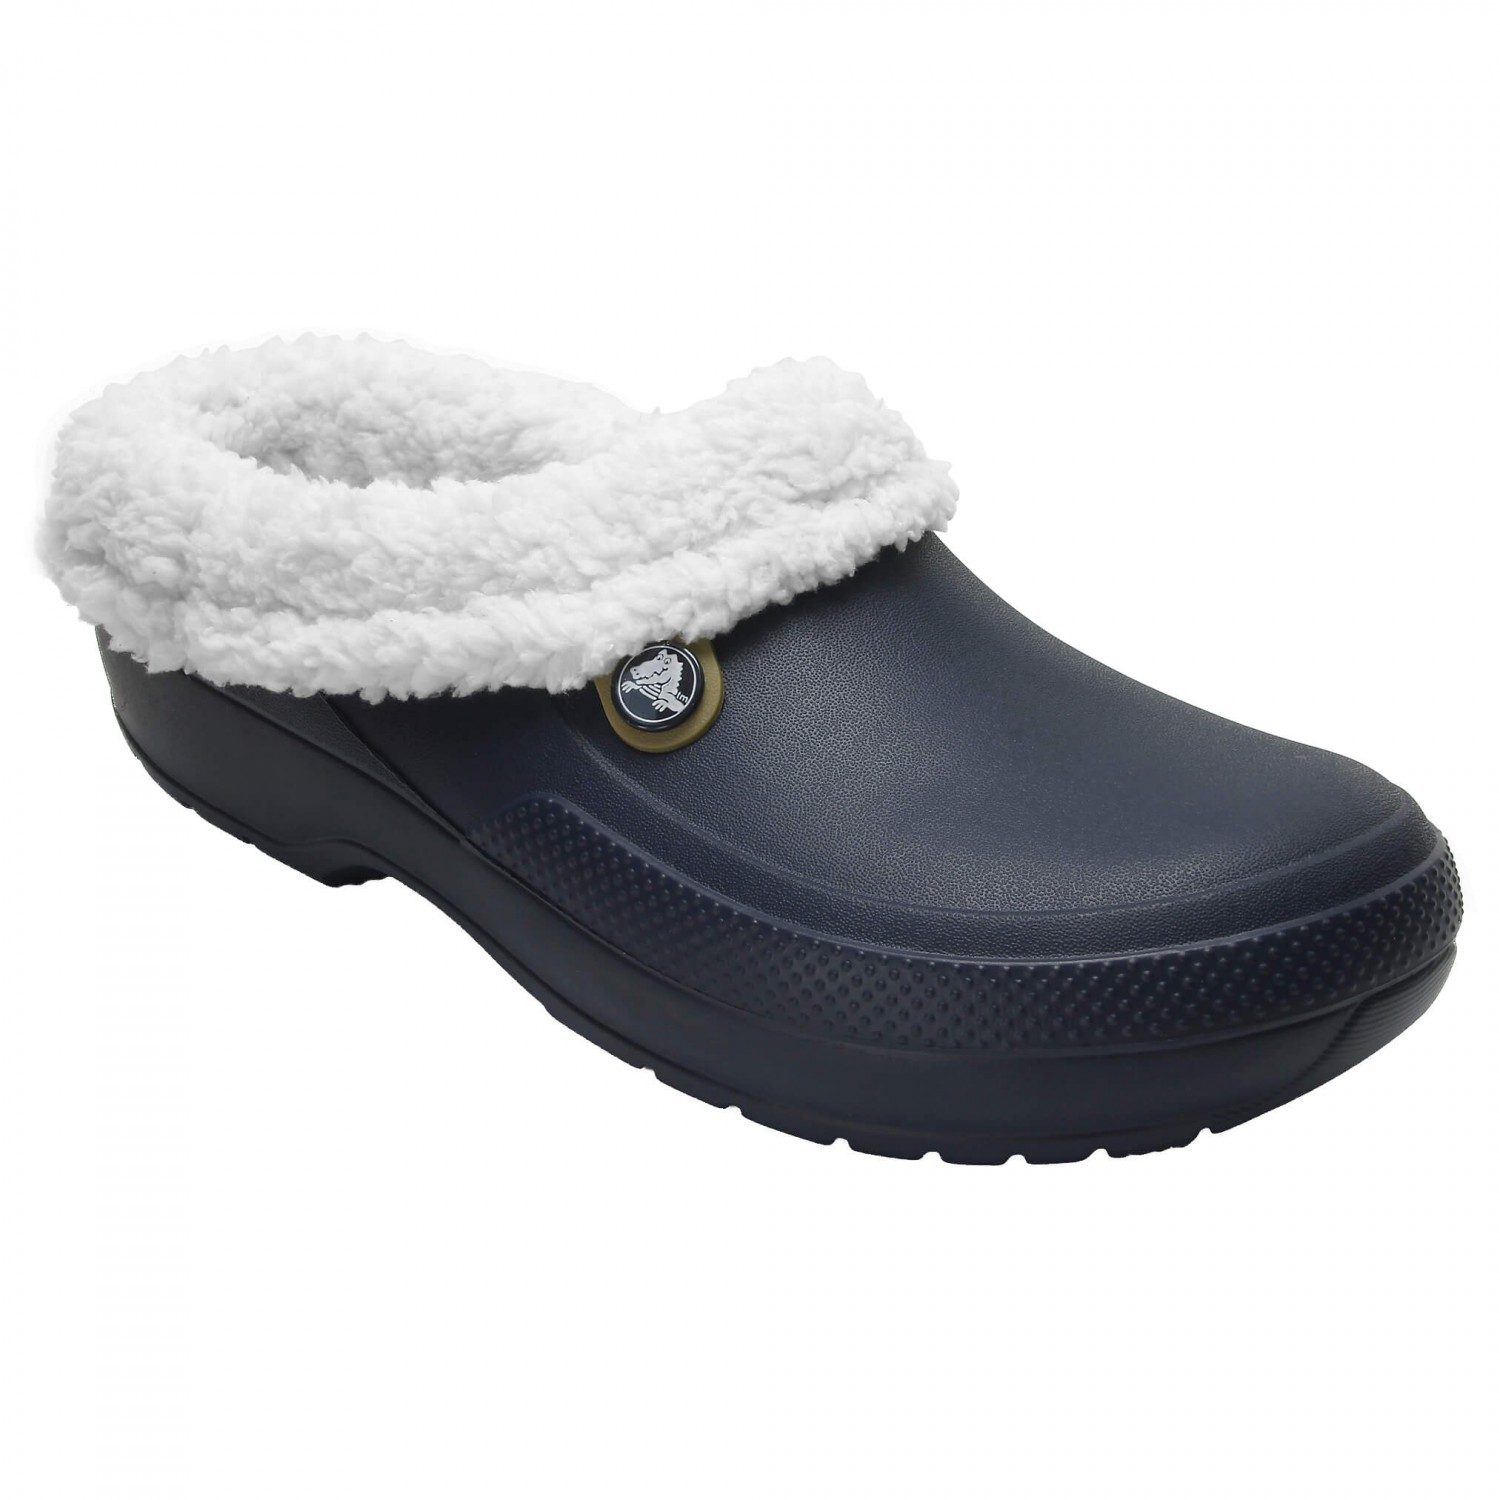 sports shoes bff02 5c3ad Crocs - Classic Blitzen III Clog - Slippers